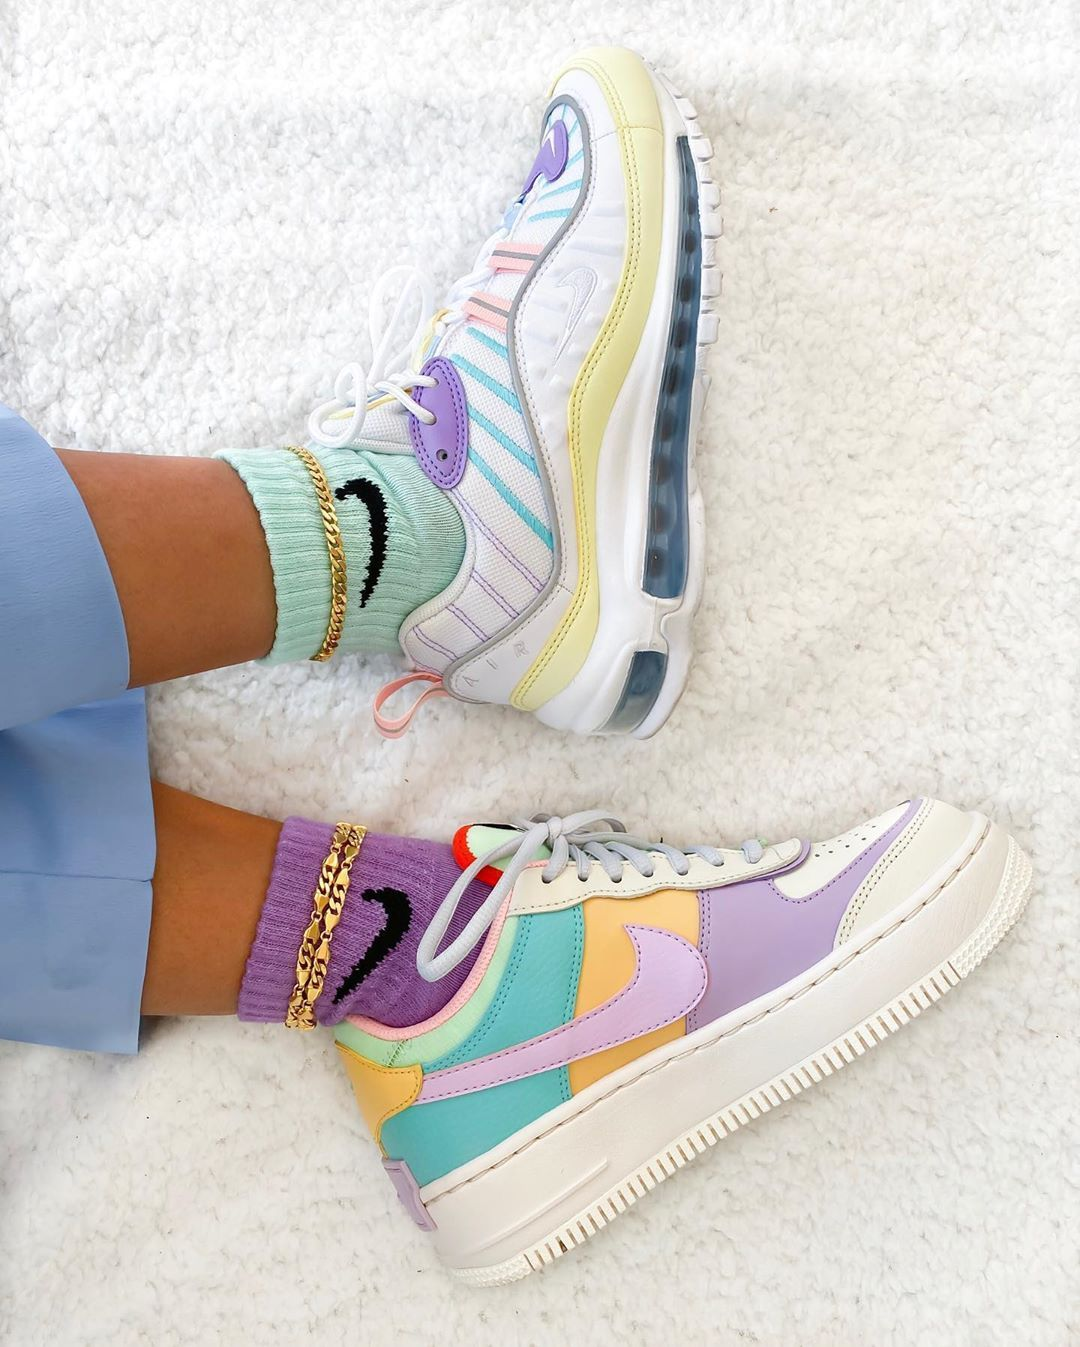 Pin by Lena Machus on shoes i need to have in 2020 | Buty